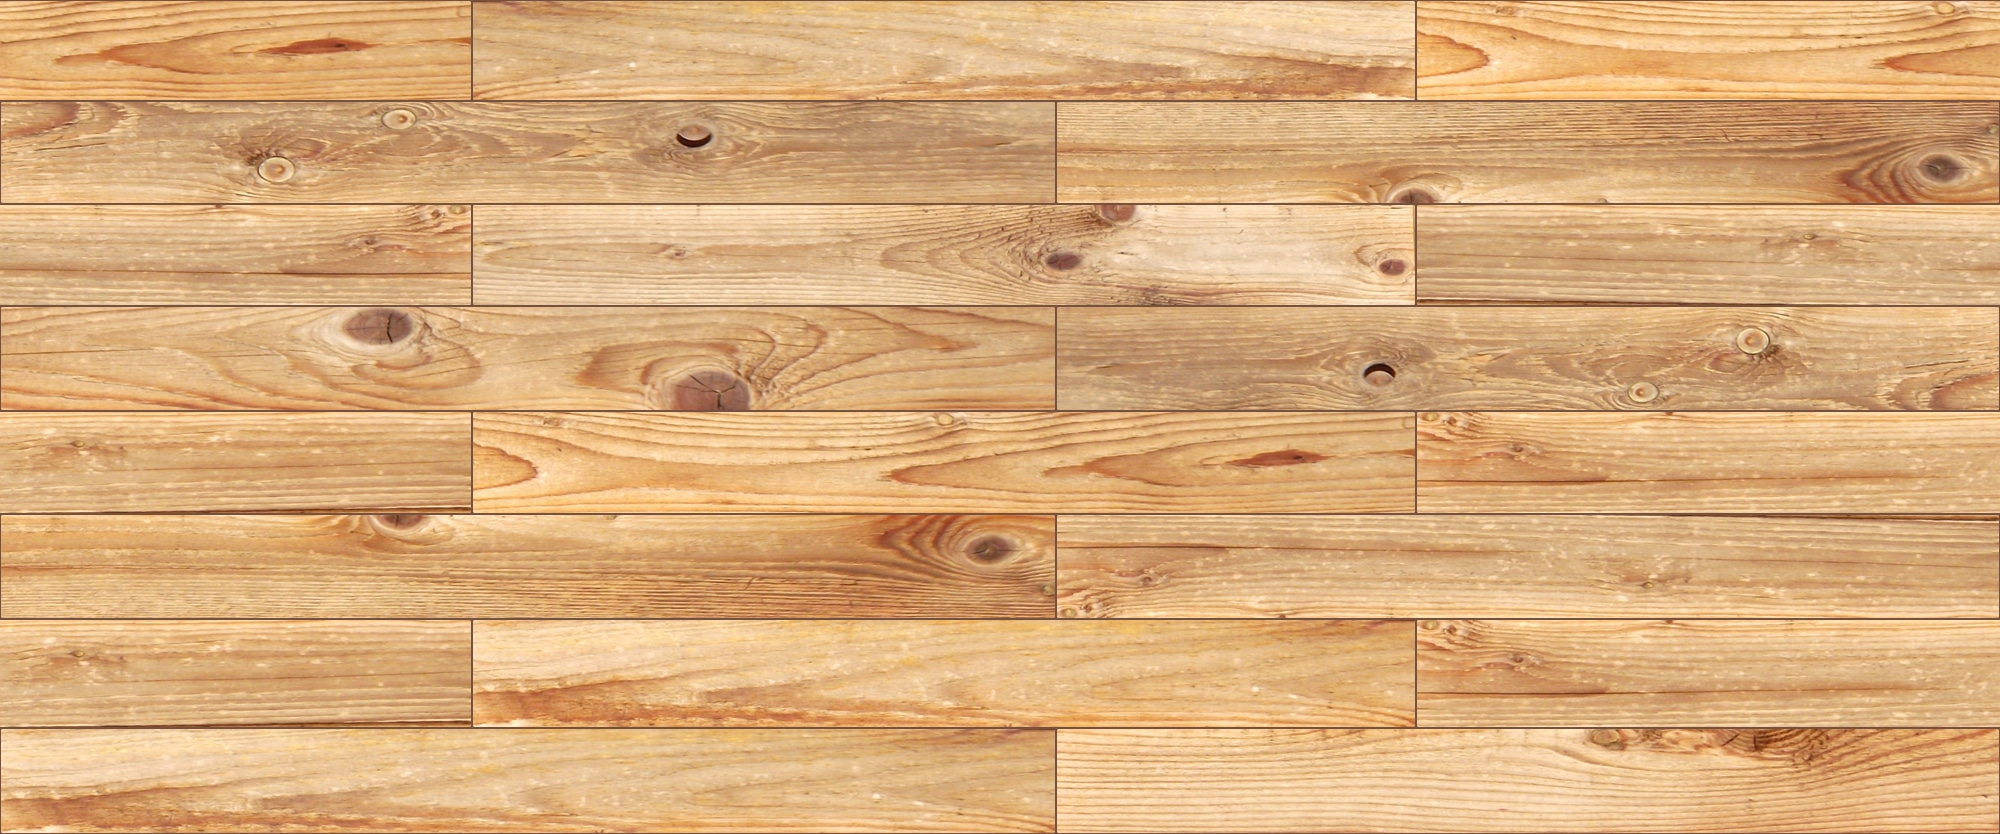 Light Brown Wood Planks 0 Cool Care Heating And Air